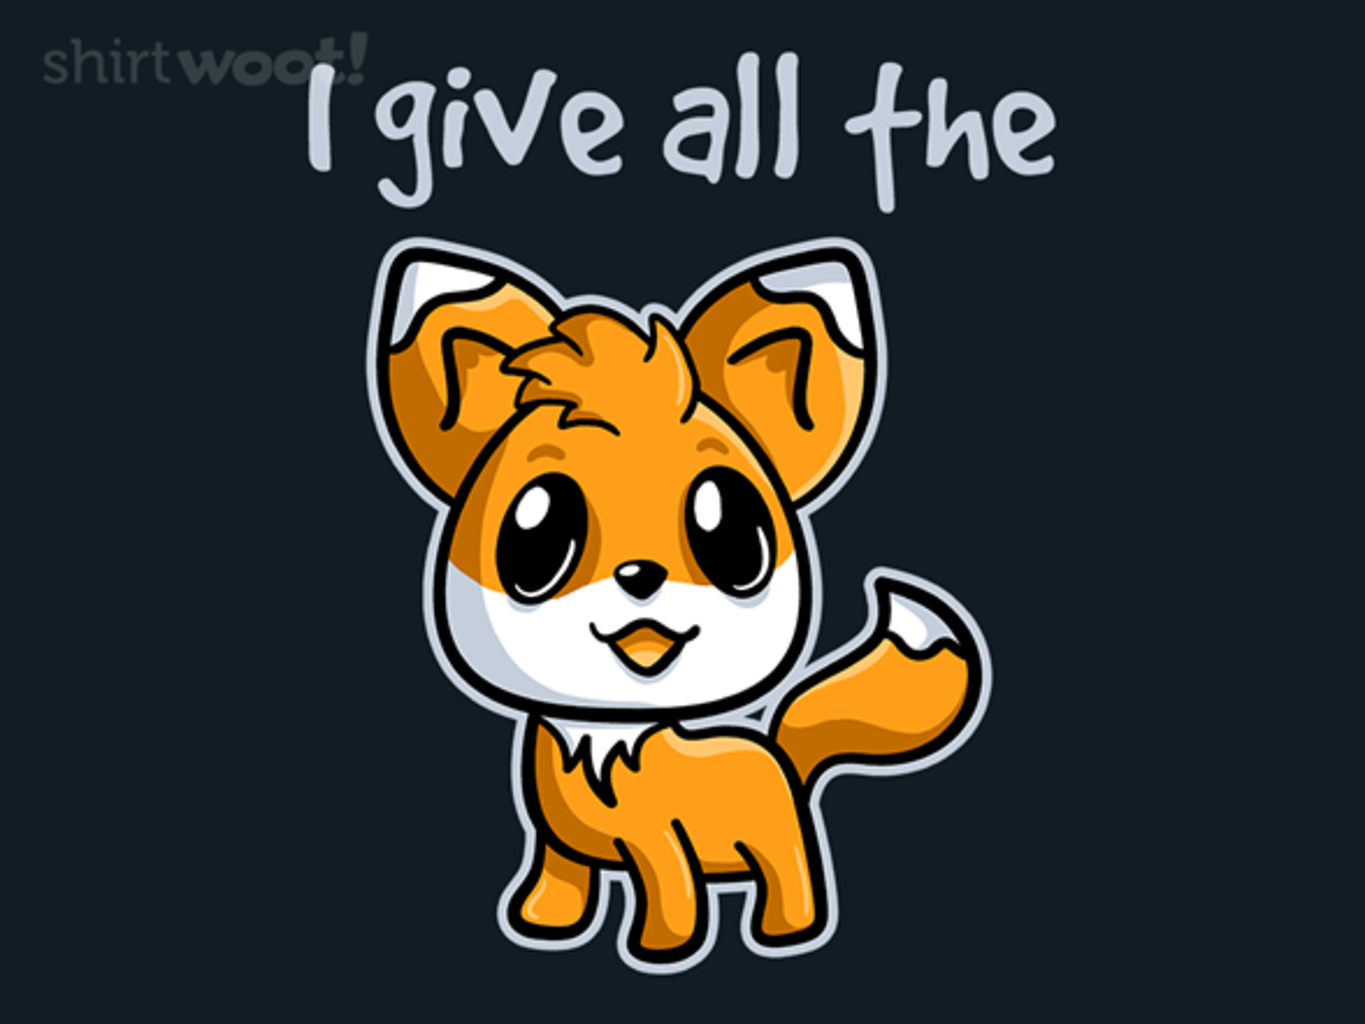 Woot!: All The Fox - $15.00 + Free shipping